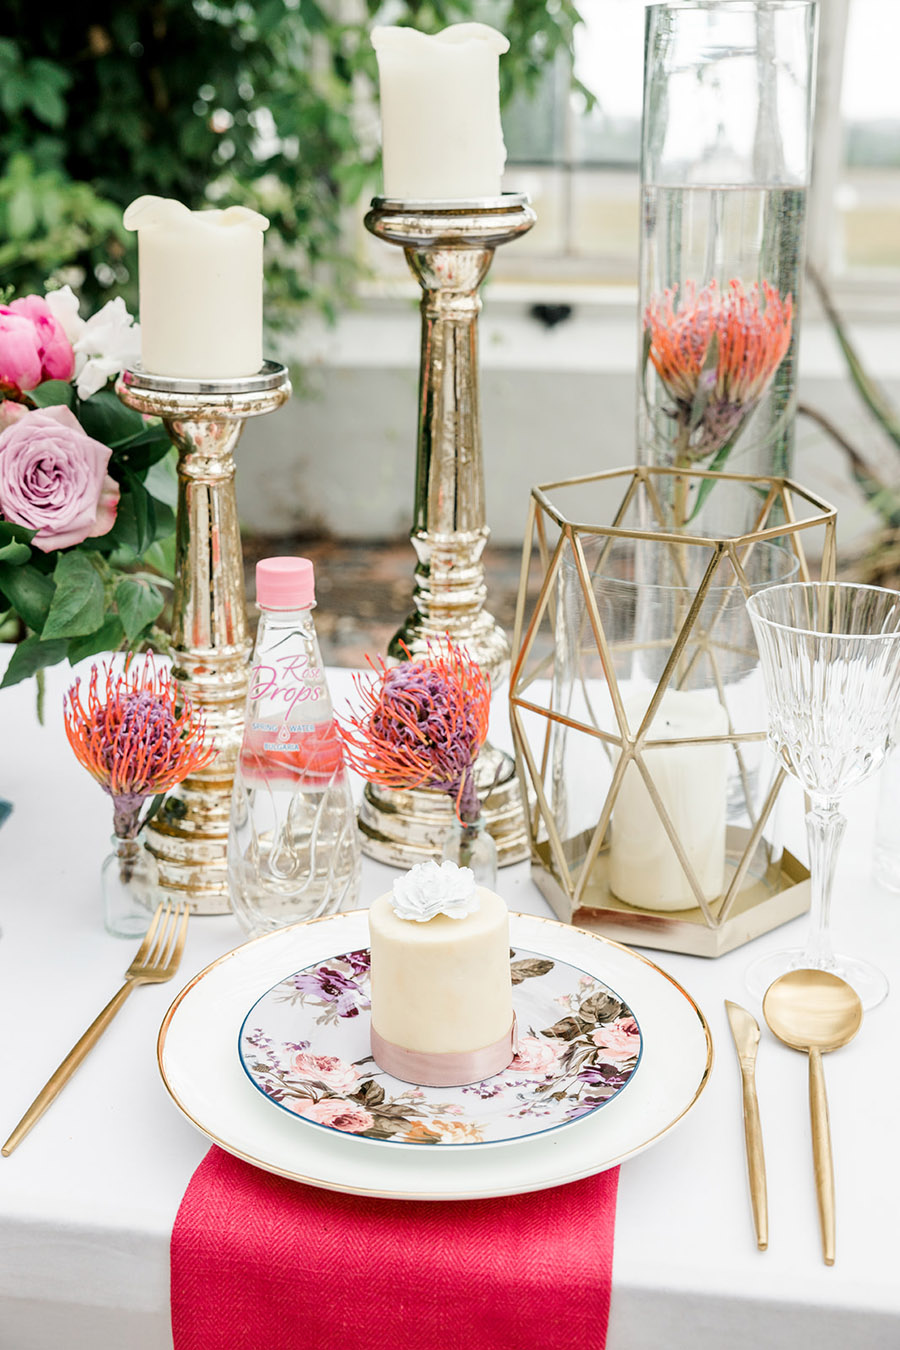 Modern intimate wedding styling inspiration from Slindon House, image credit Kelsie Scully (25)